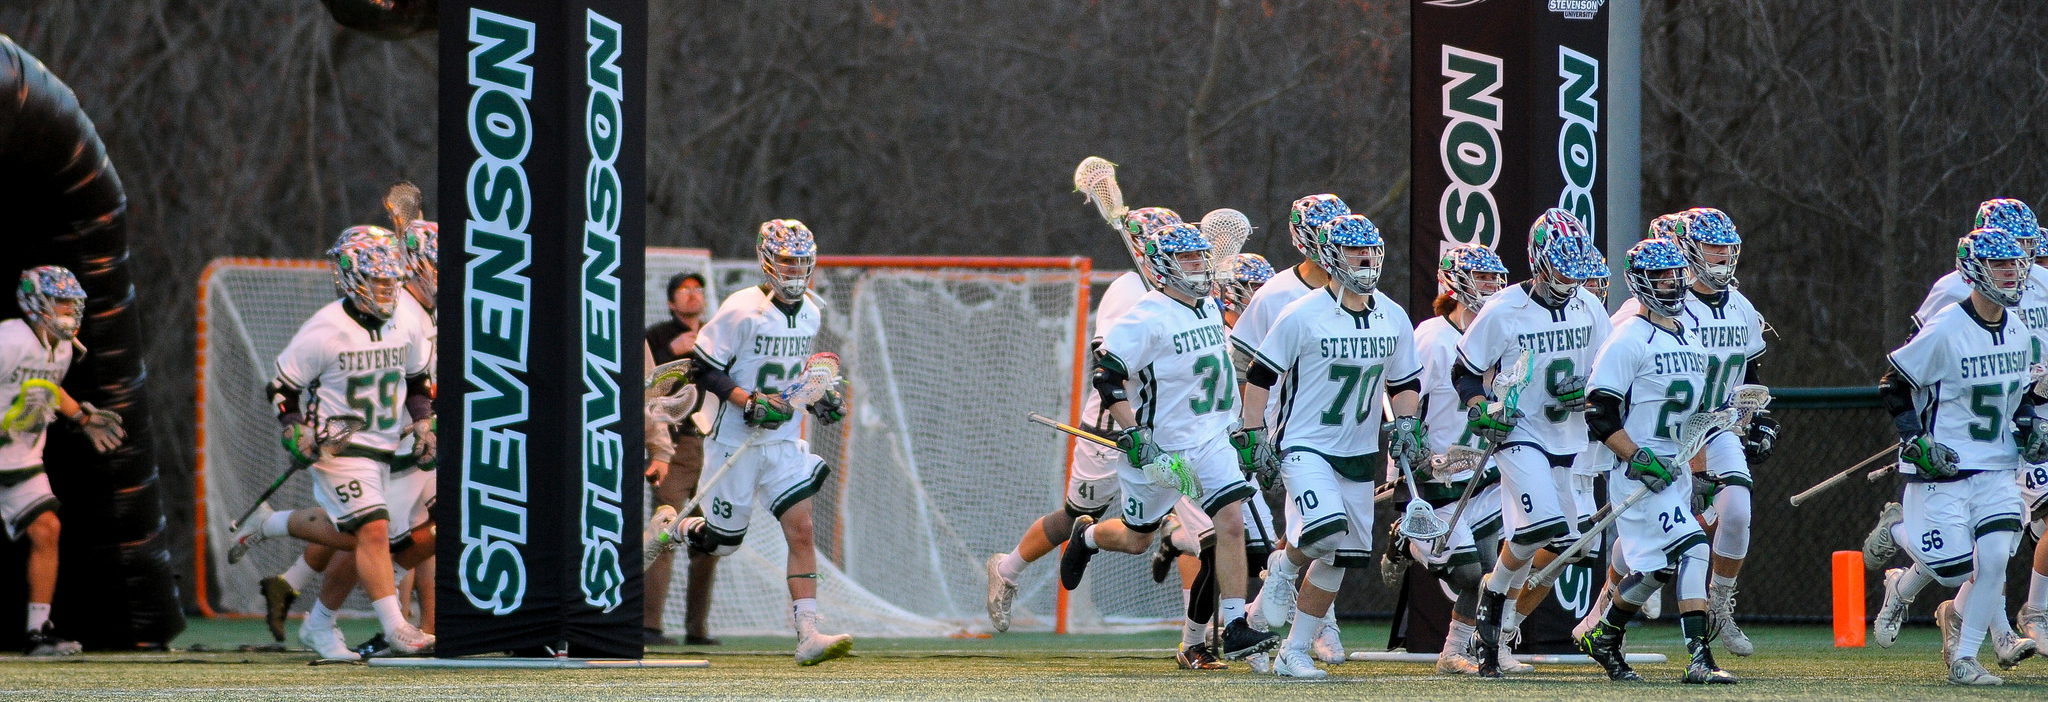 Men's Lacrosse to Hold Prospect Day on Sunday, October 22